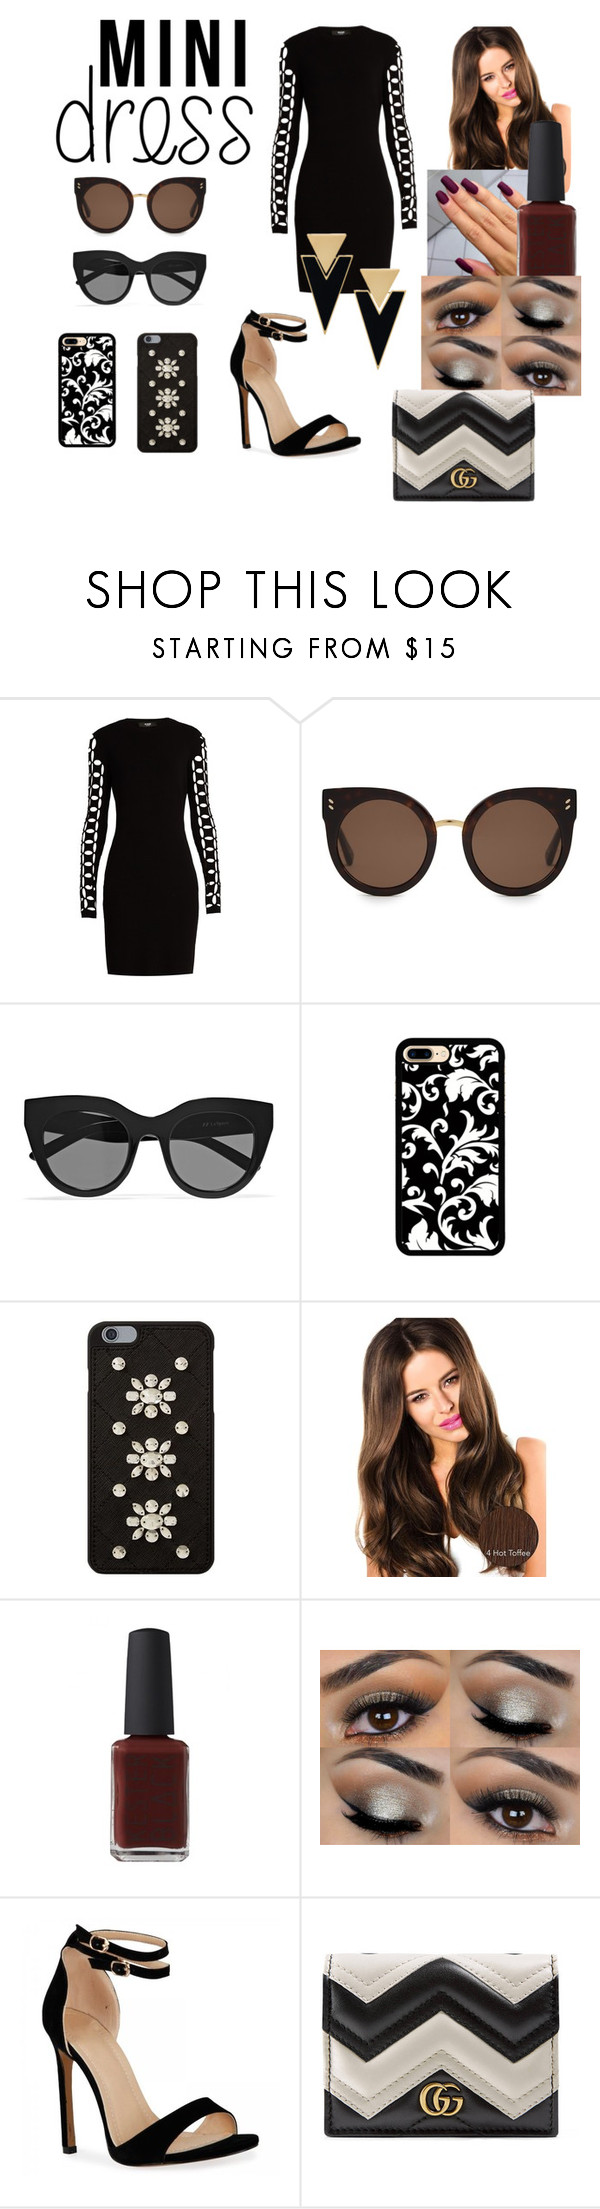 """""""Untitled #6"""" by franwin ❤ liked on Polyvore featuring Versus, STELLA McCARTNEY, Le Specs, MICHAEL Michael Kors, Kester Black, Gucci and Yves Saint Laurent"""